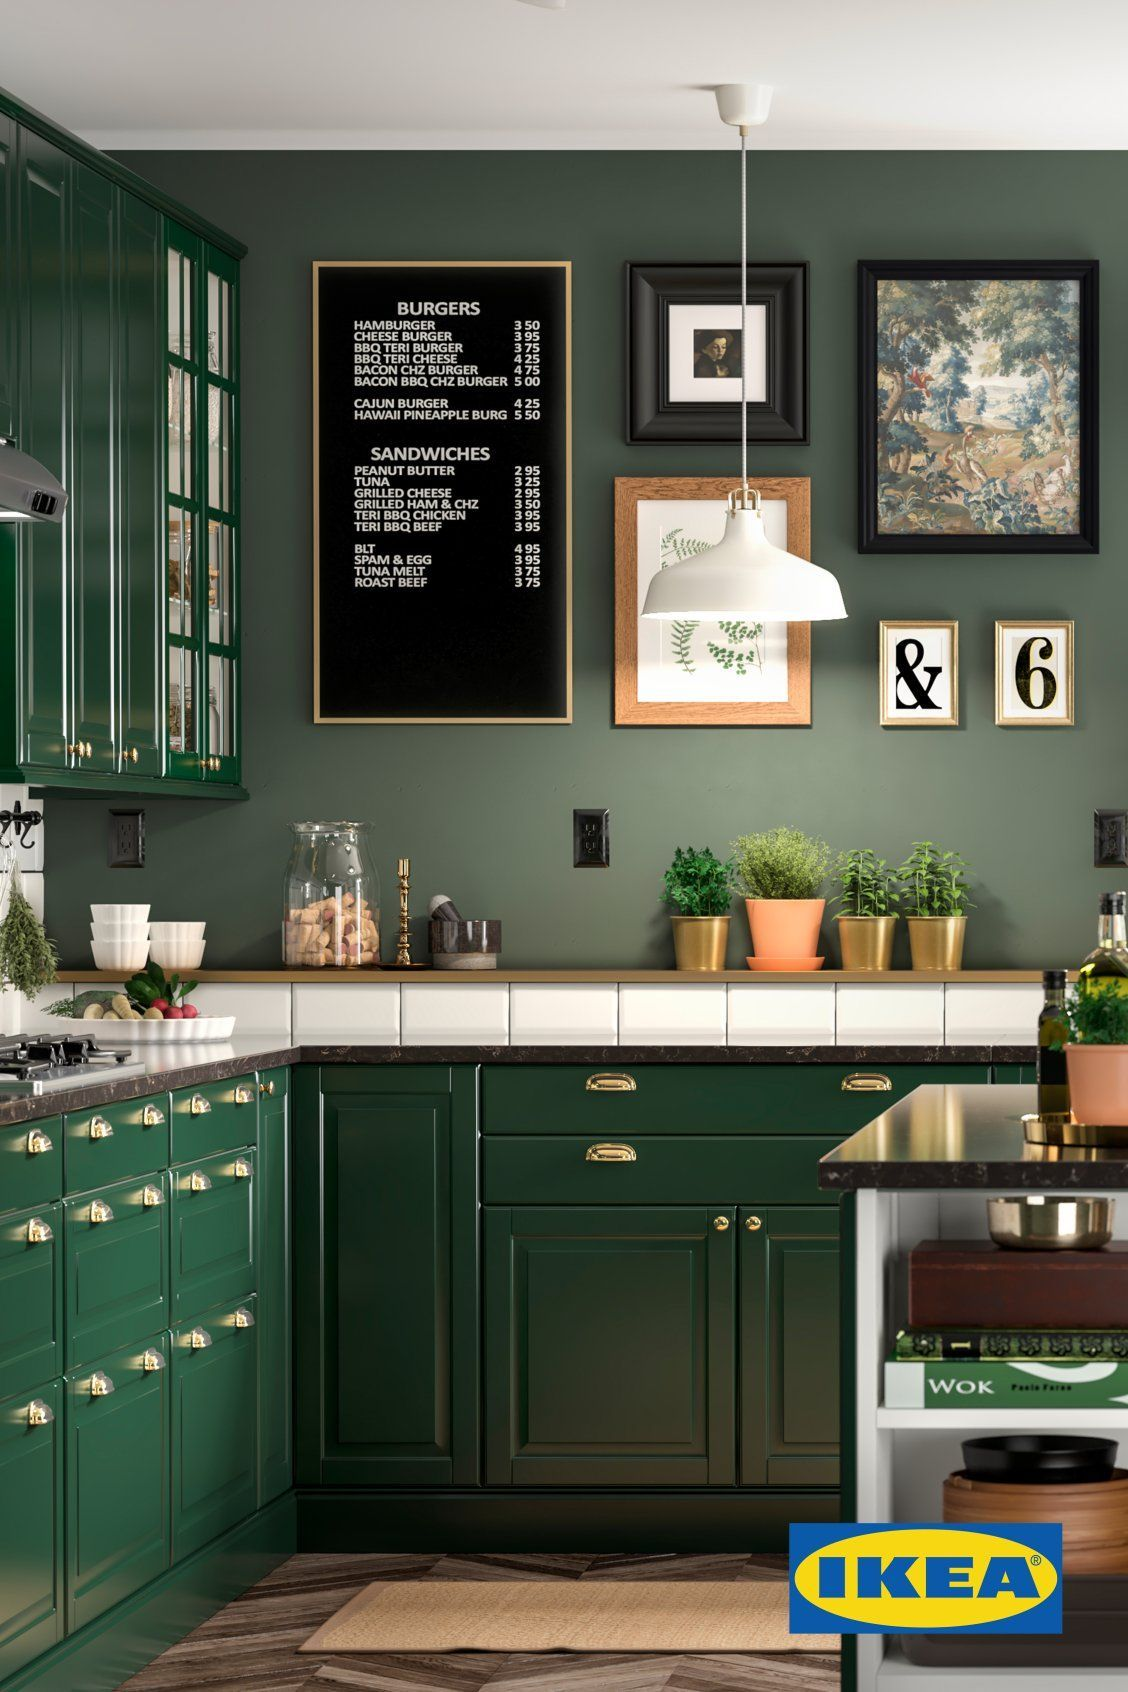 IKEA Kitchens - Browse, Plan & Design#browse #design #ikea